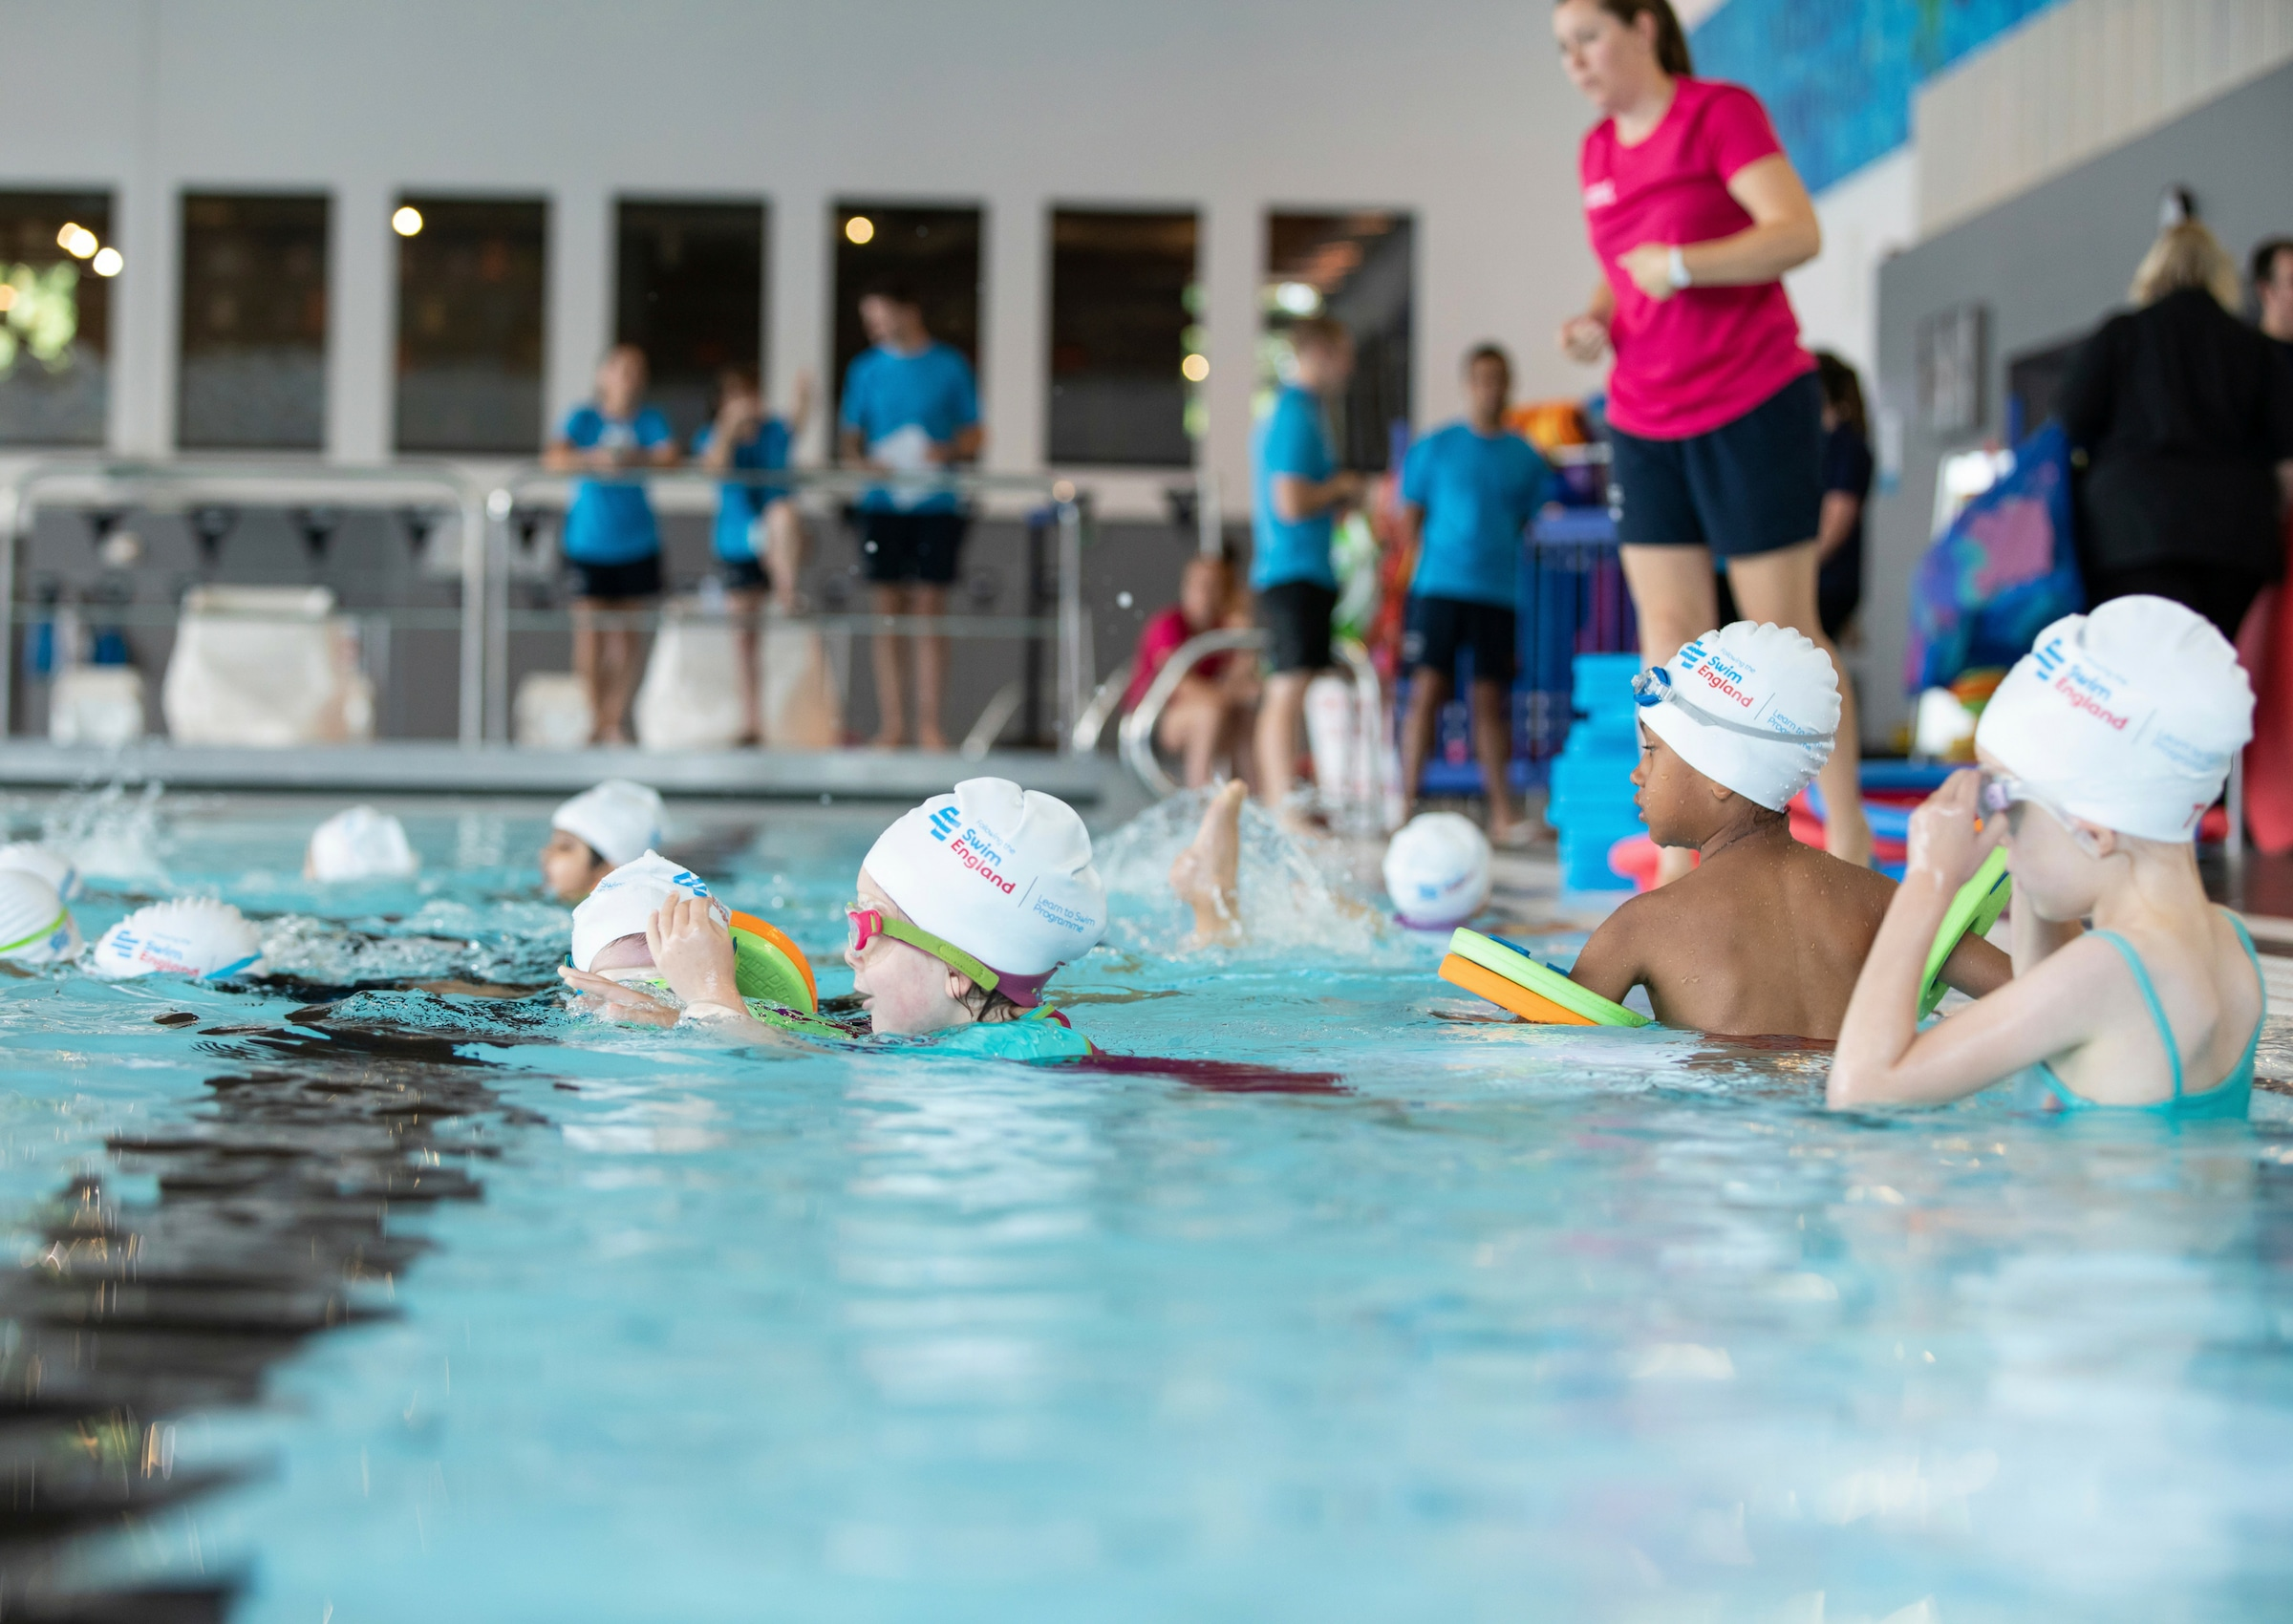 Institute of Swimming confirms first of its kind collaborative agreement with Stevenage Leisure